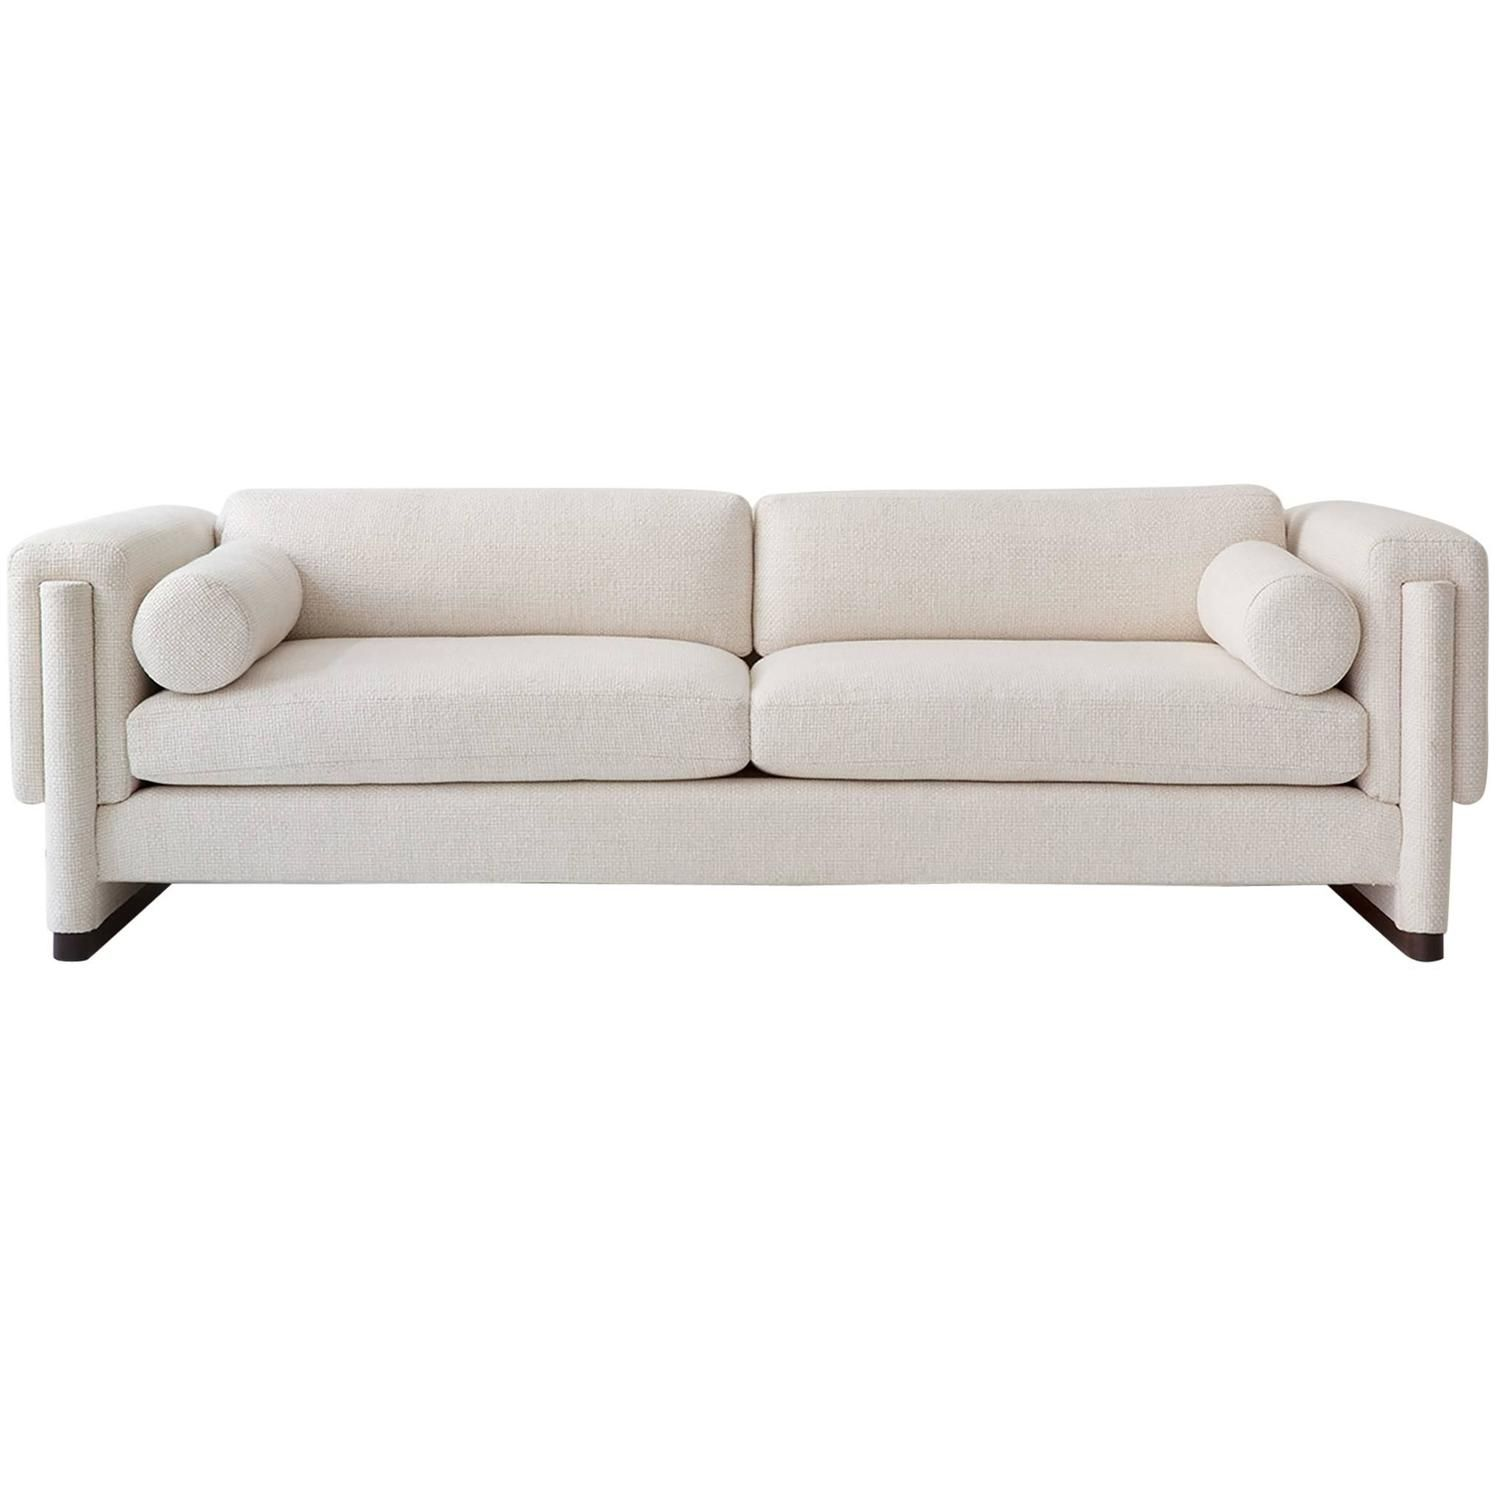 Howard Sofa Upholstered Down And Solid Wood 1stdibs Com Howard Sofa Best Sofa Sofa Design